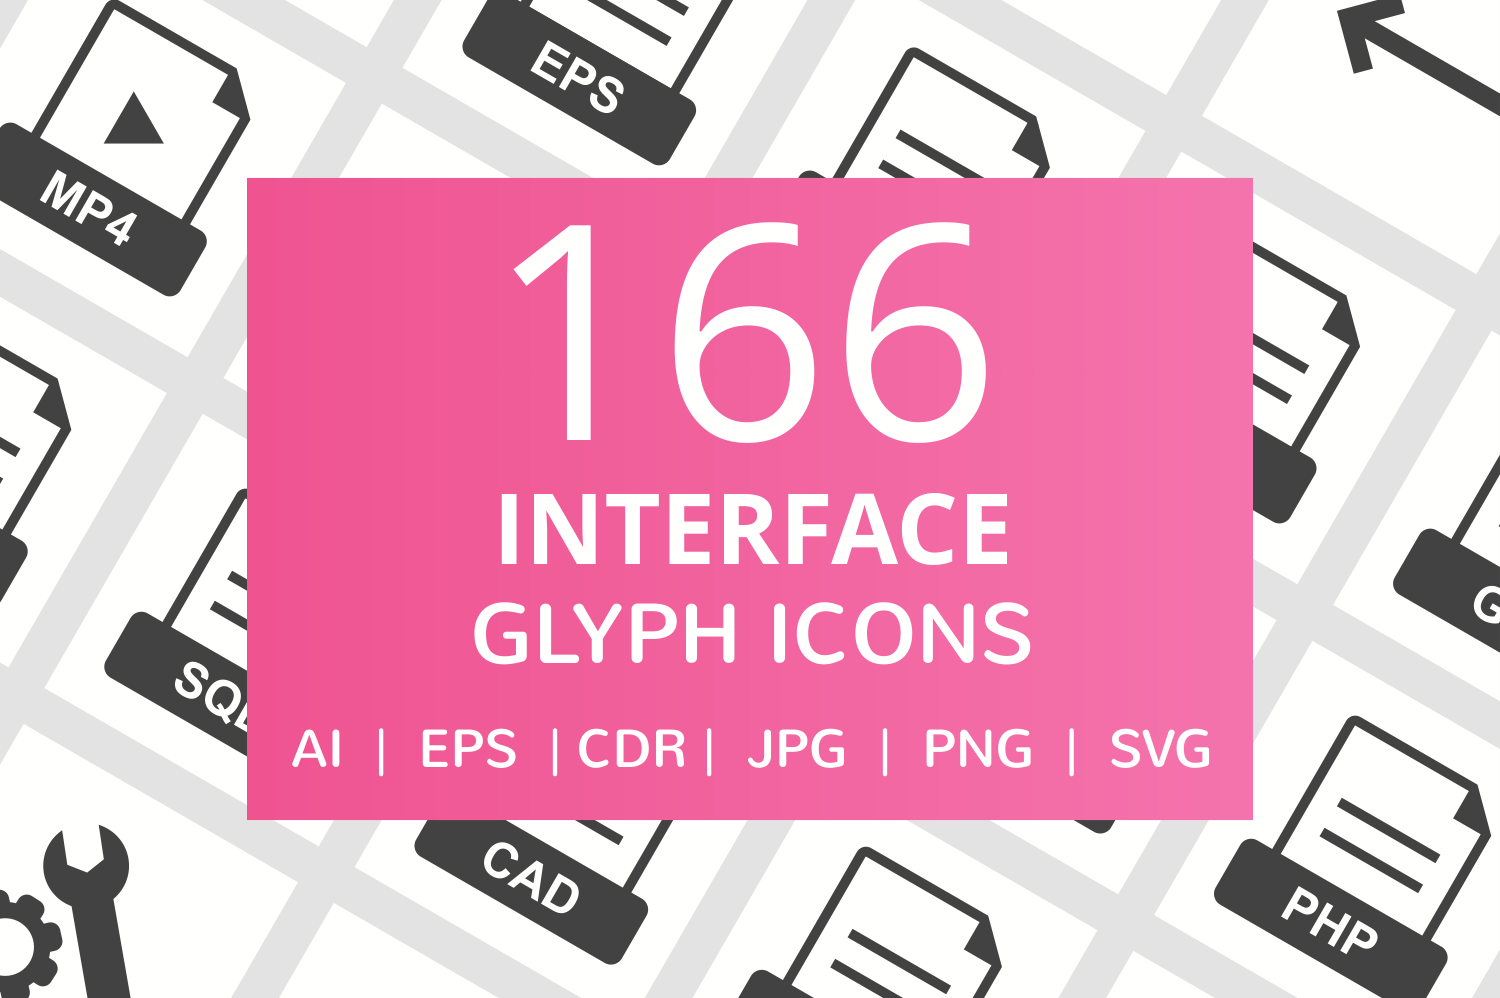 166 Interface Glyph Icons example image 1